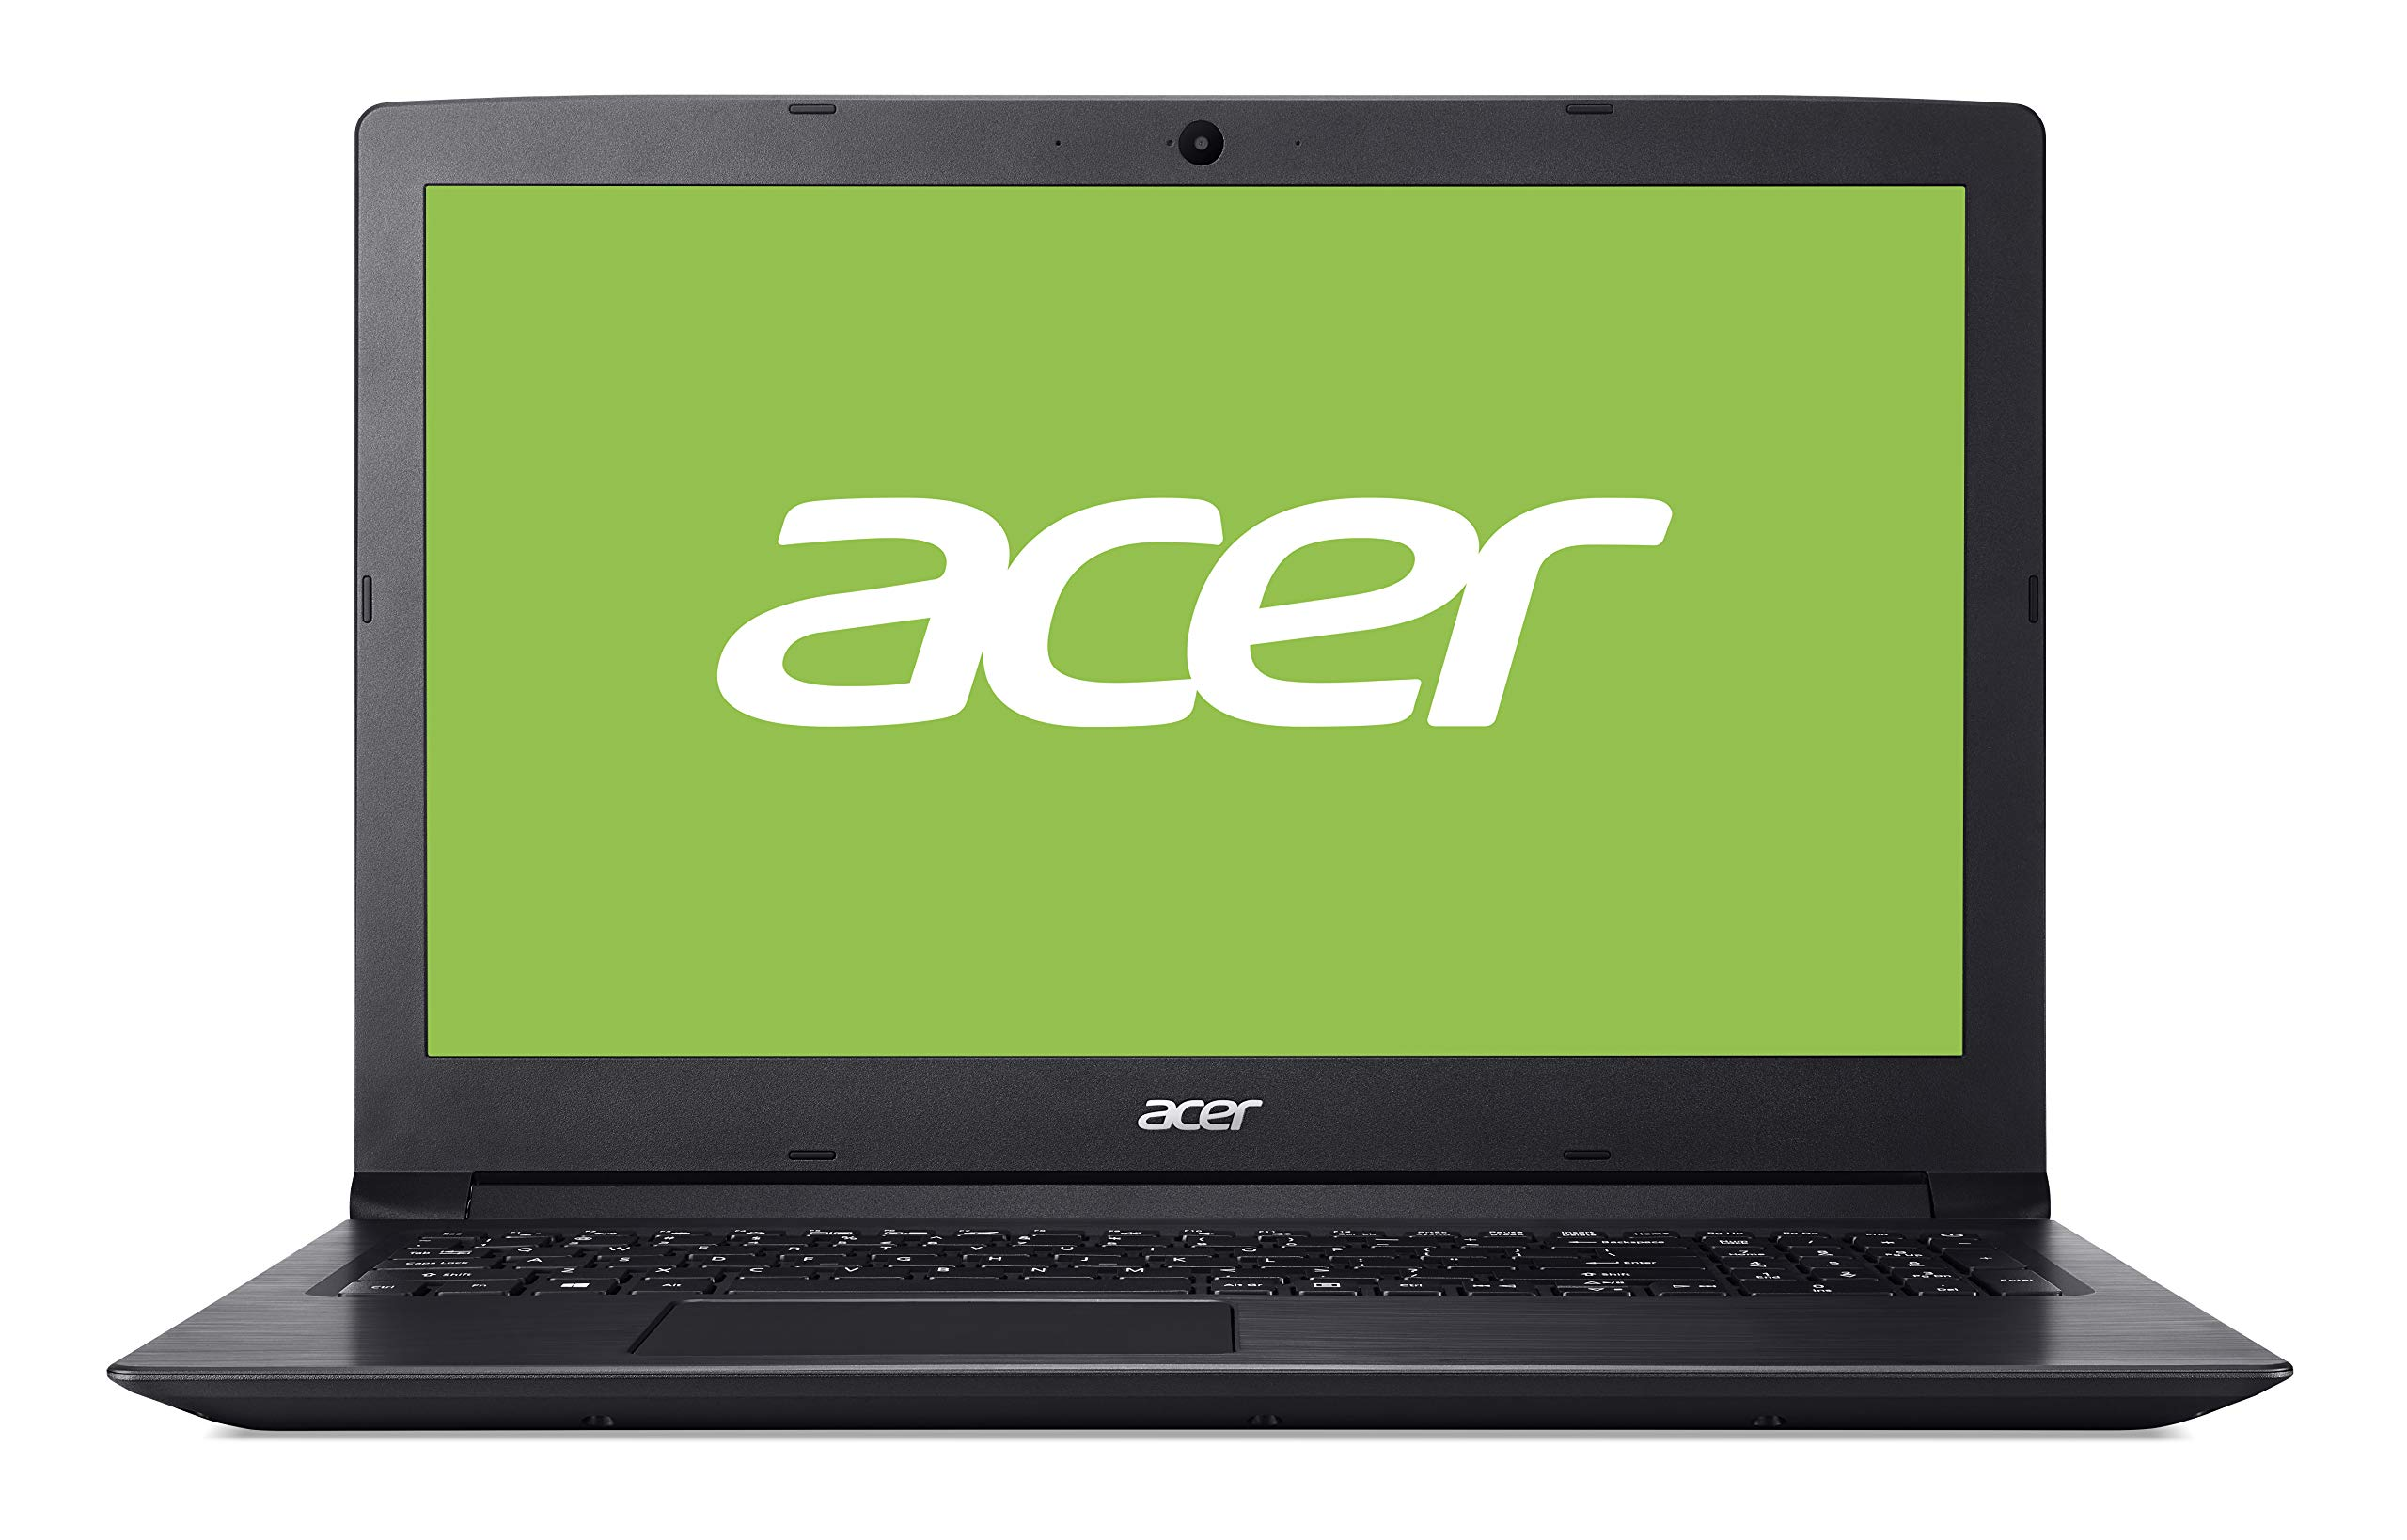 Acer Aspire 3 | A315-53G-5947 – Ordenador portátil 15.6″ HD LED (Intel Core i5-8250U, 8 GB de RAM, 1 TB HDD, Nvidia MX130 2 GB, Windows 10 Home) Negro – Teclado QWERTY Español